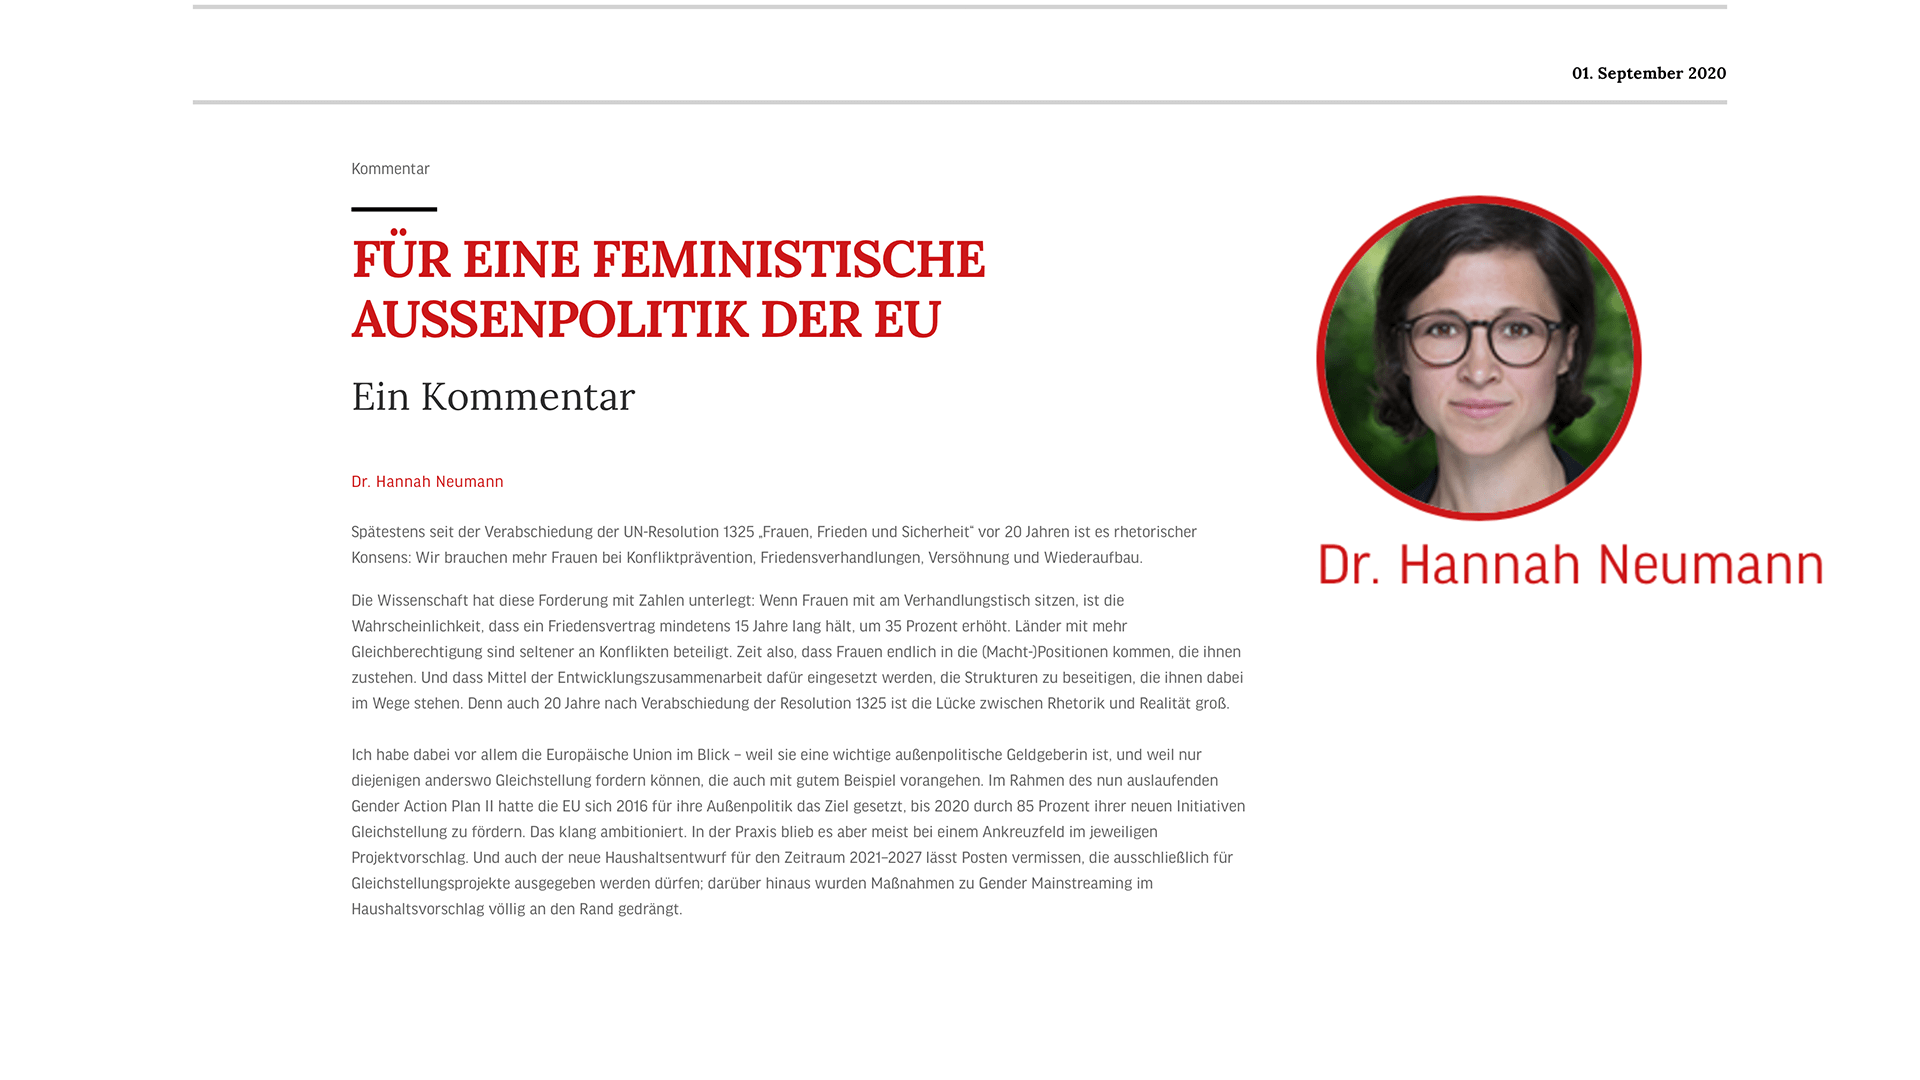 For a feminist foreign policy of the EU - My comment in the IP